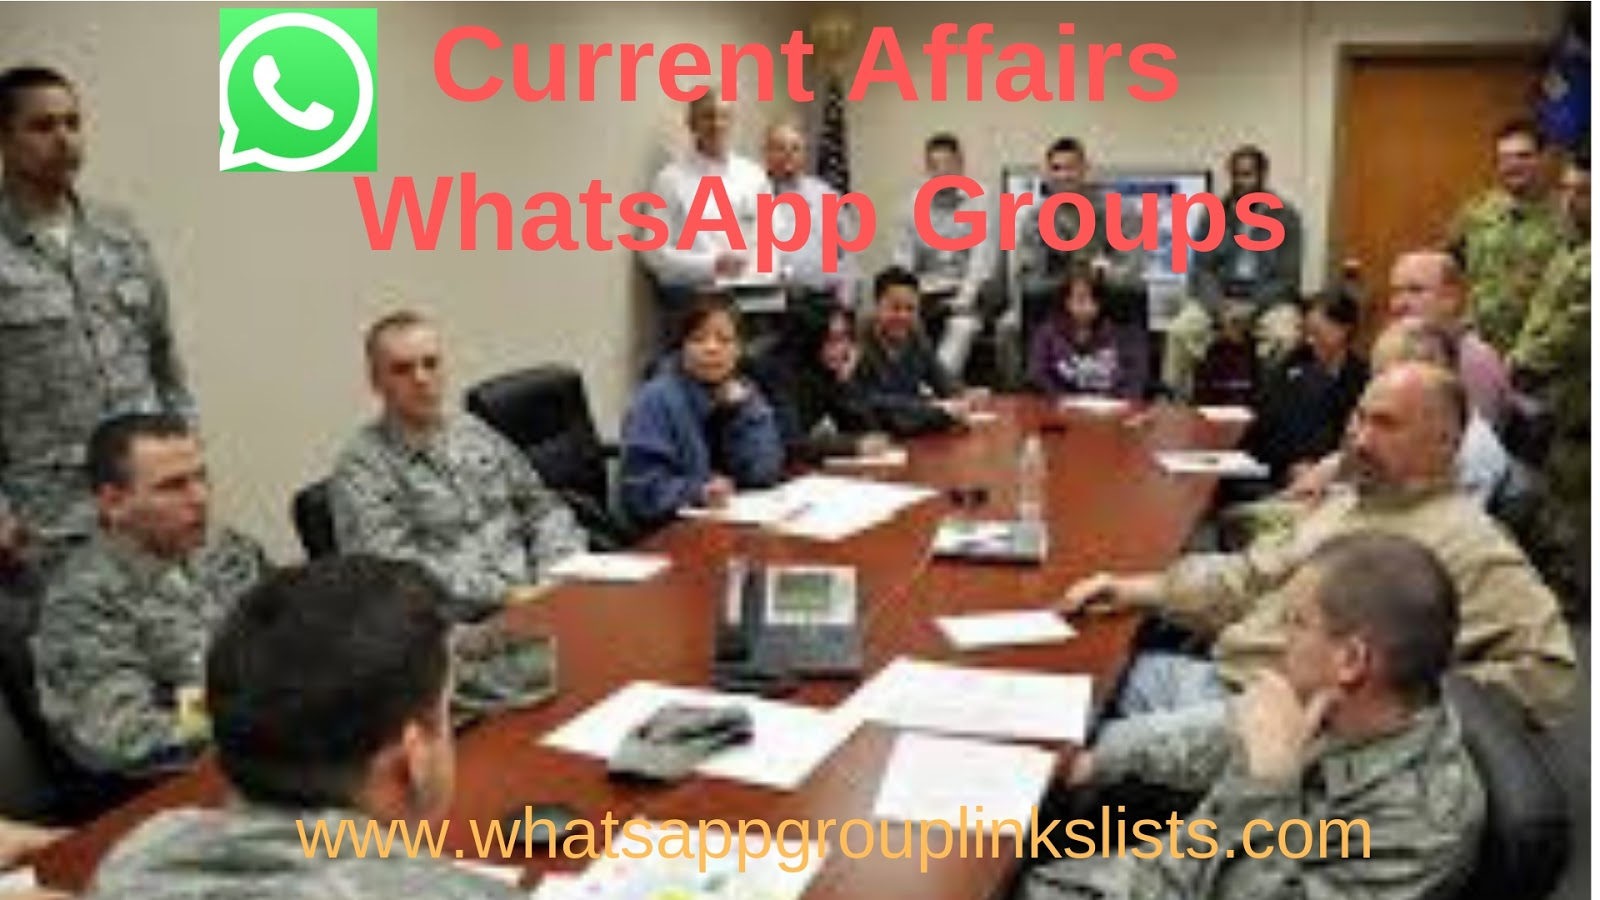 Join Current Affairs WhatsApp Group links List